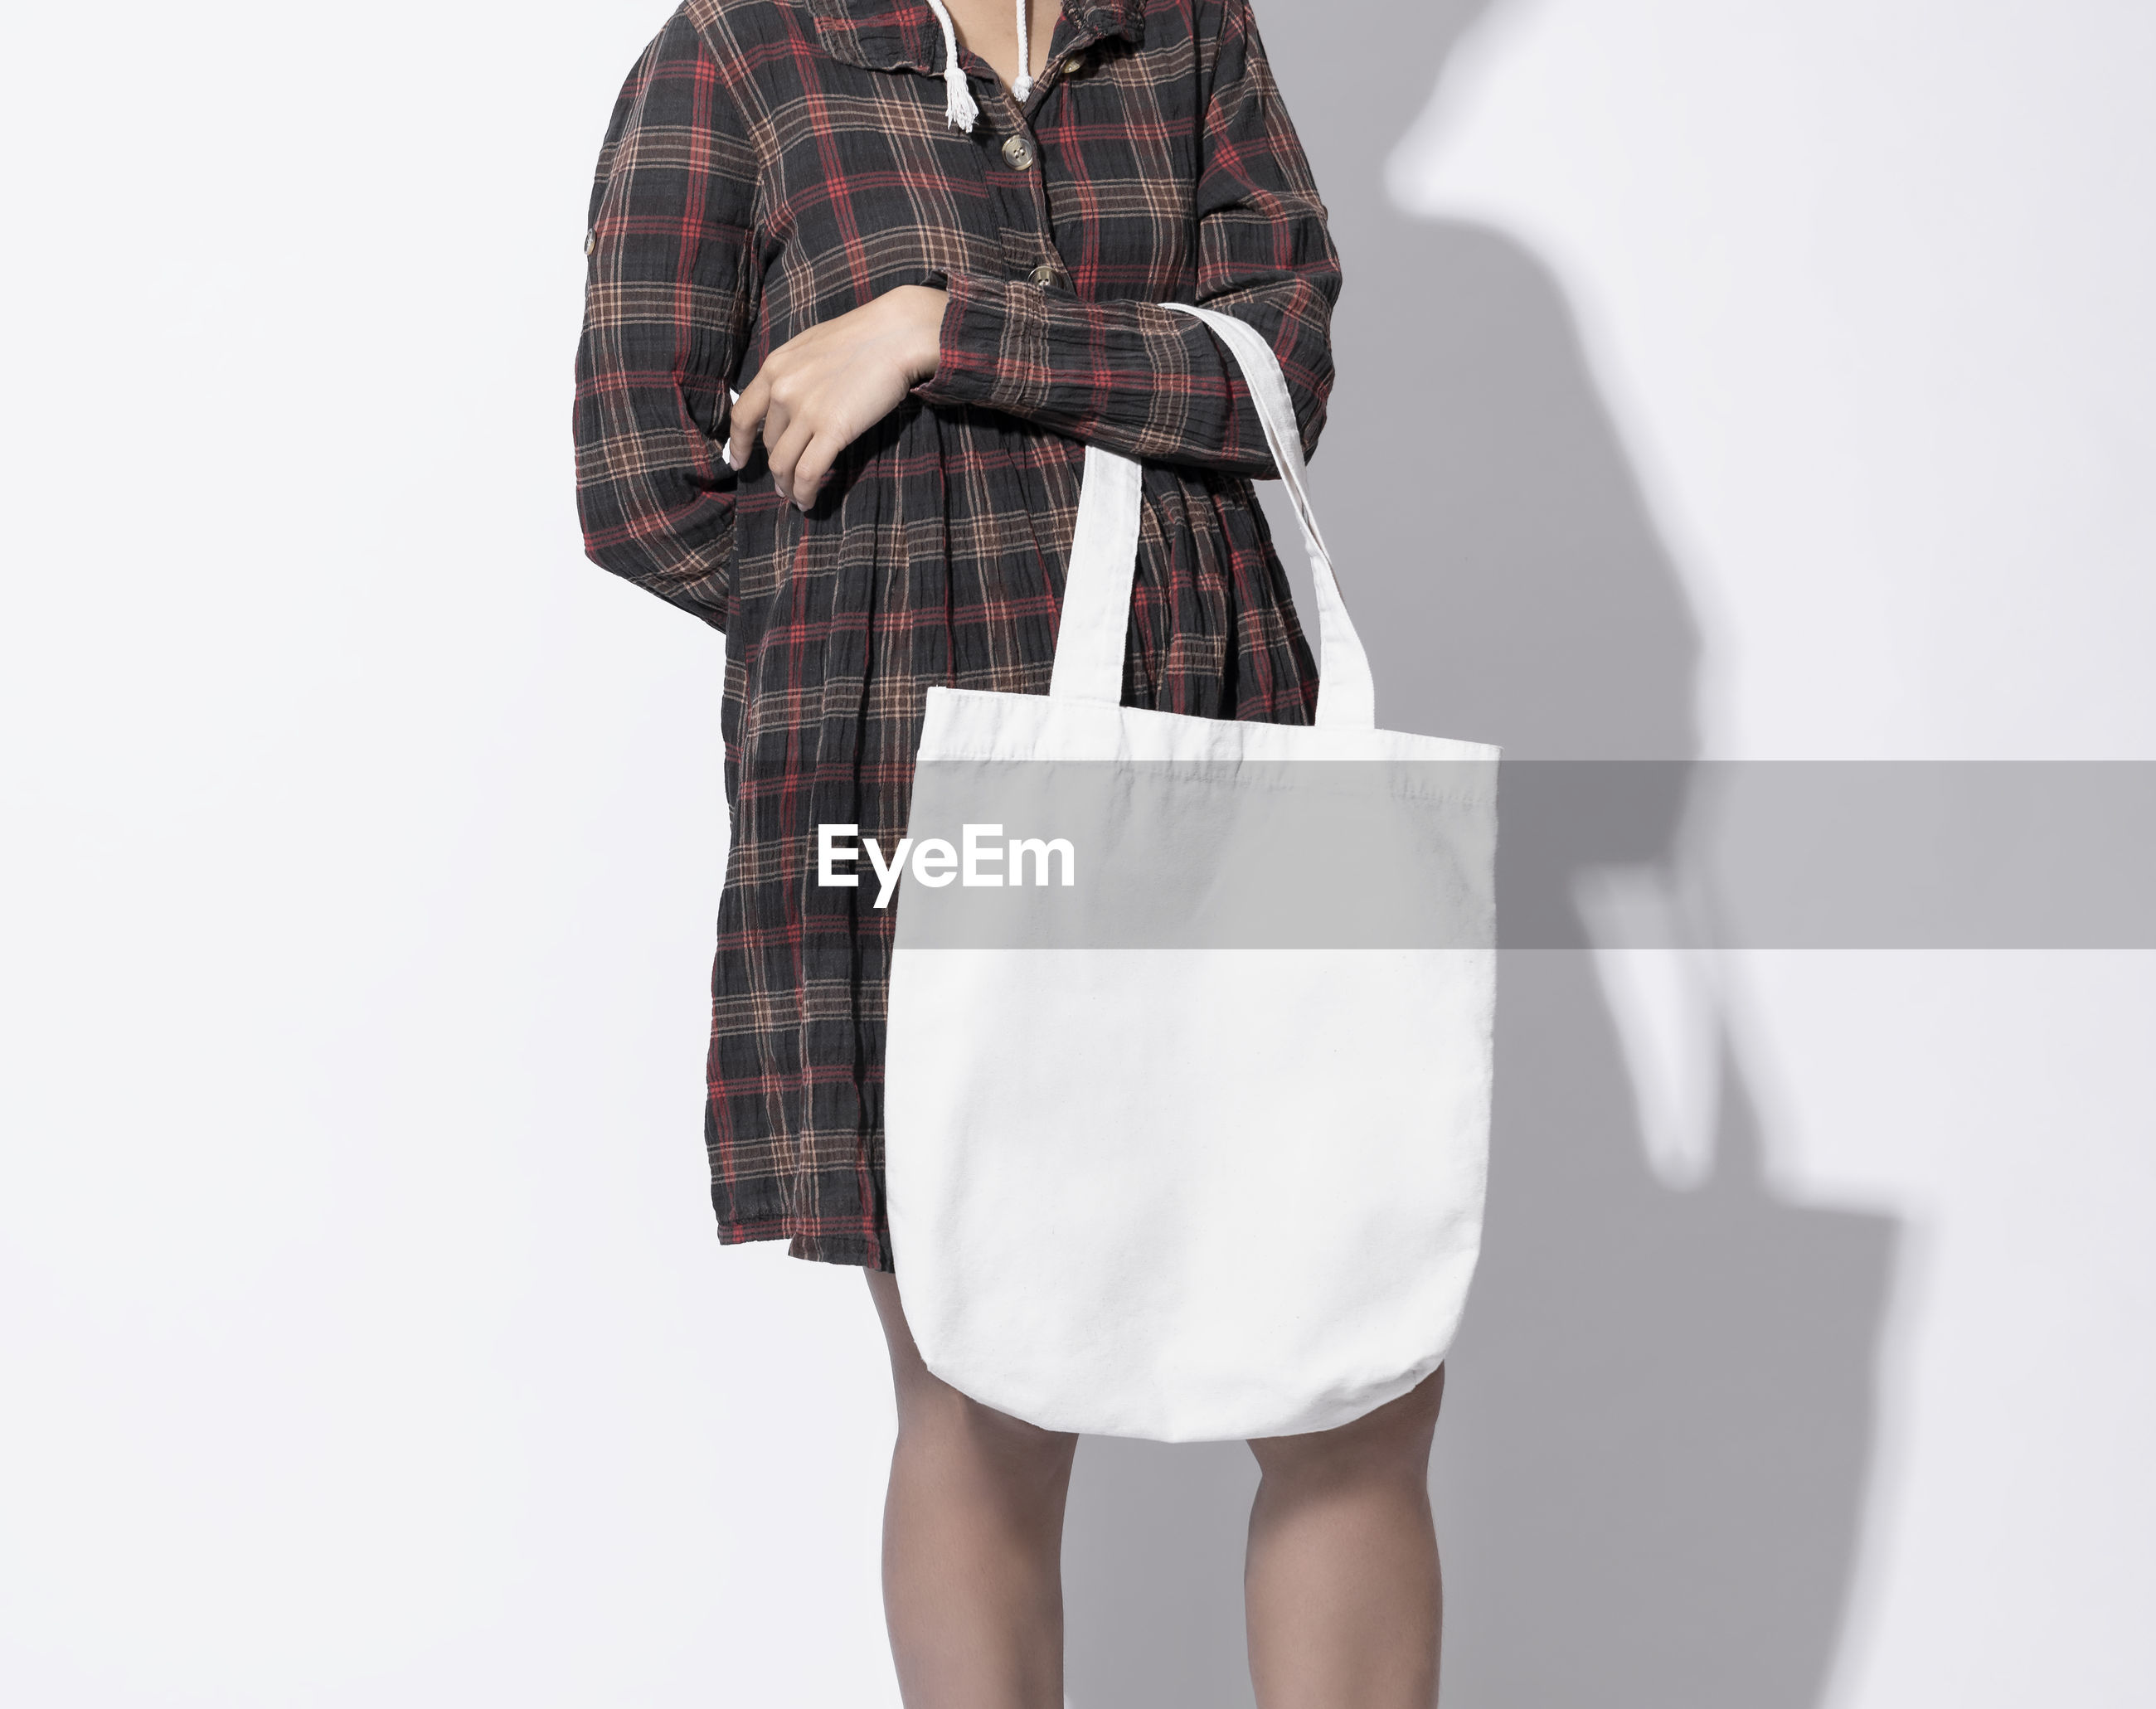 Midsection of woman holding bag against white background